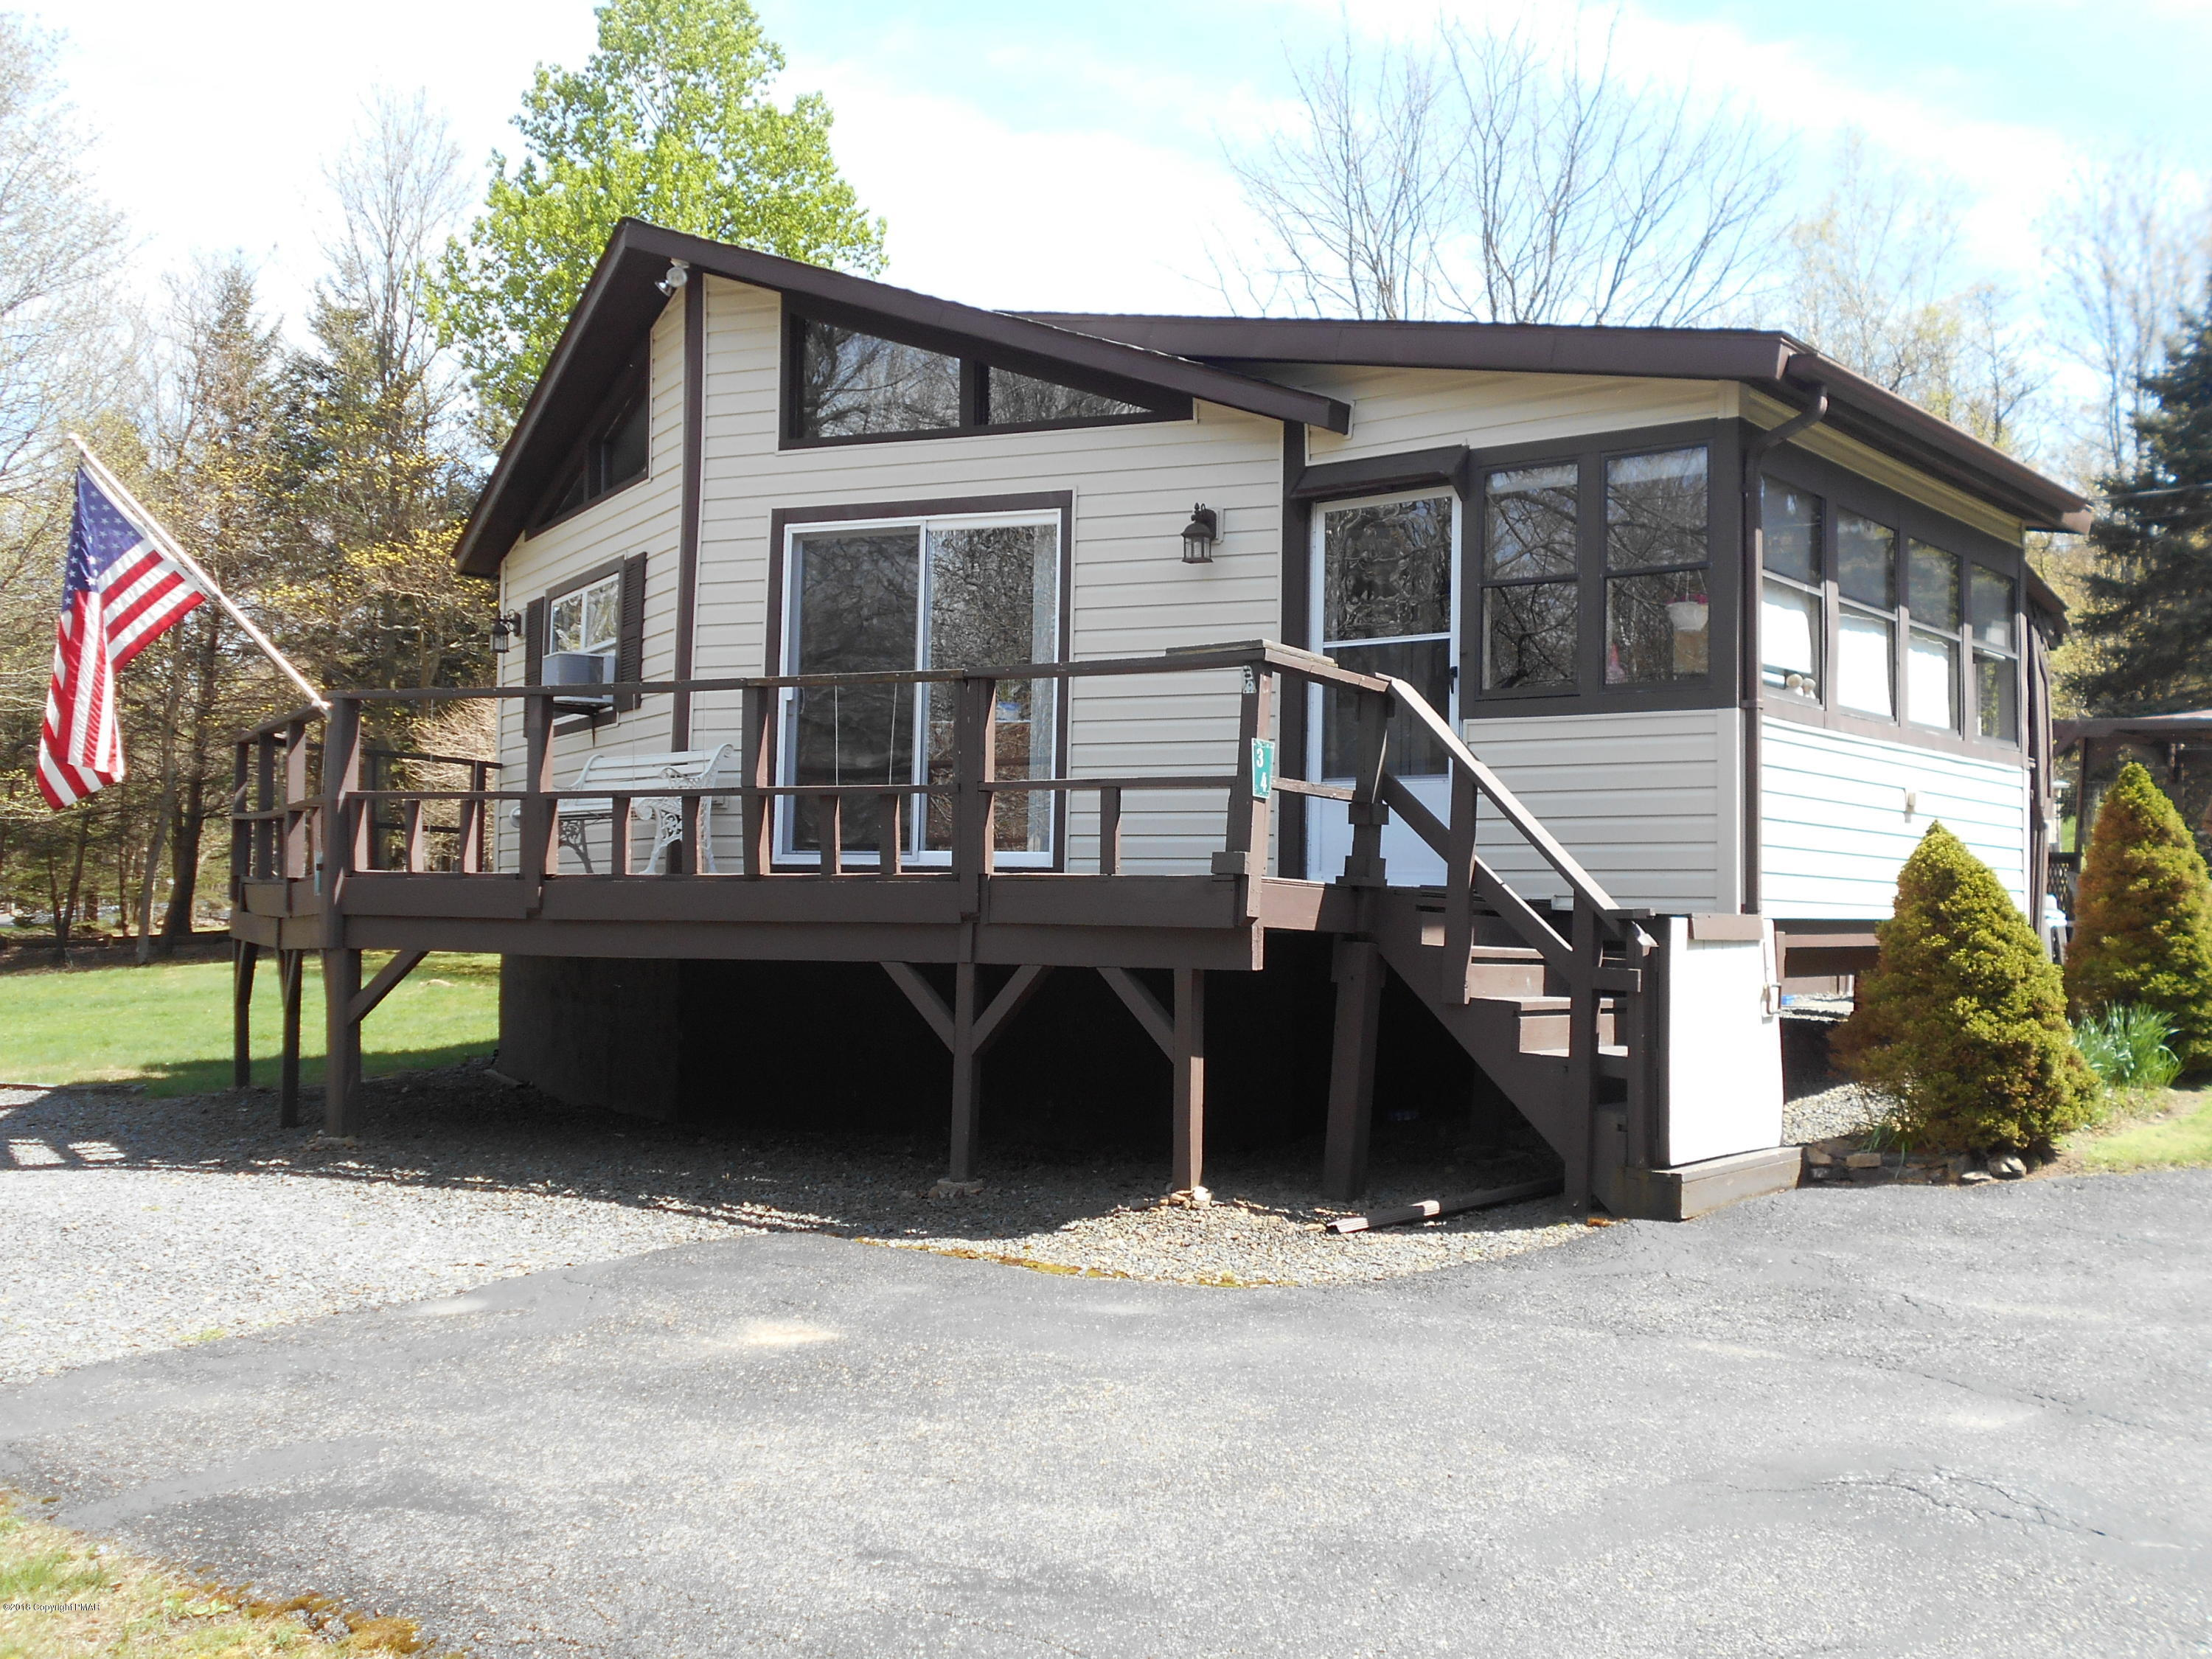 34 Guest Circle, Albrightsville, PA 18210